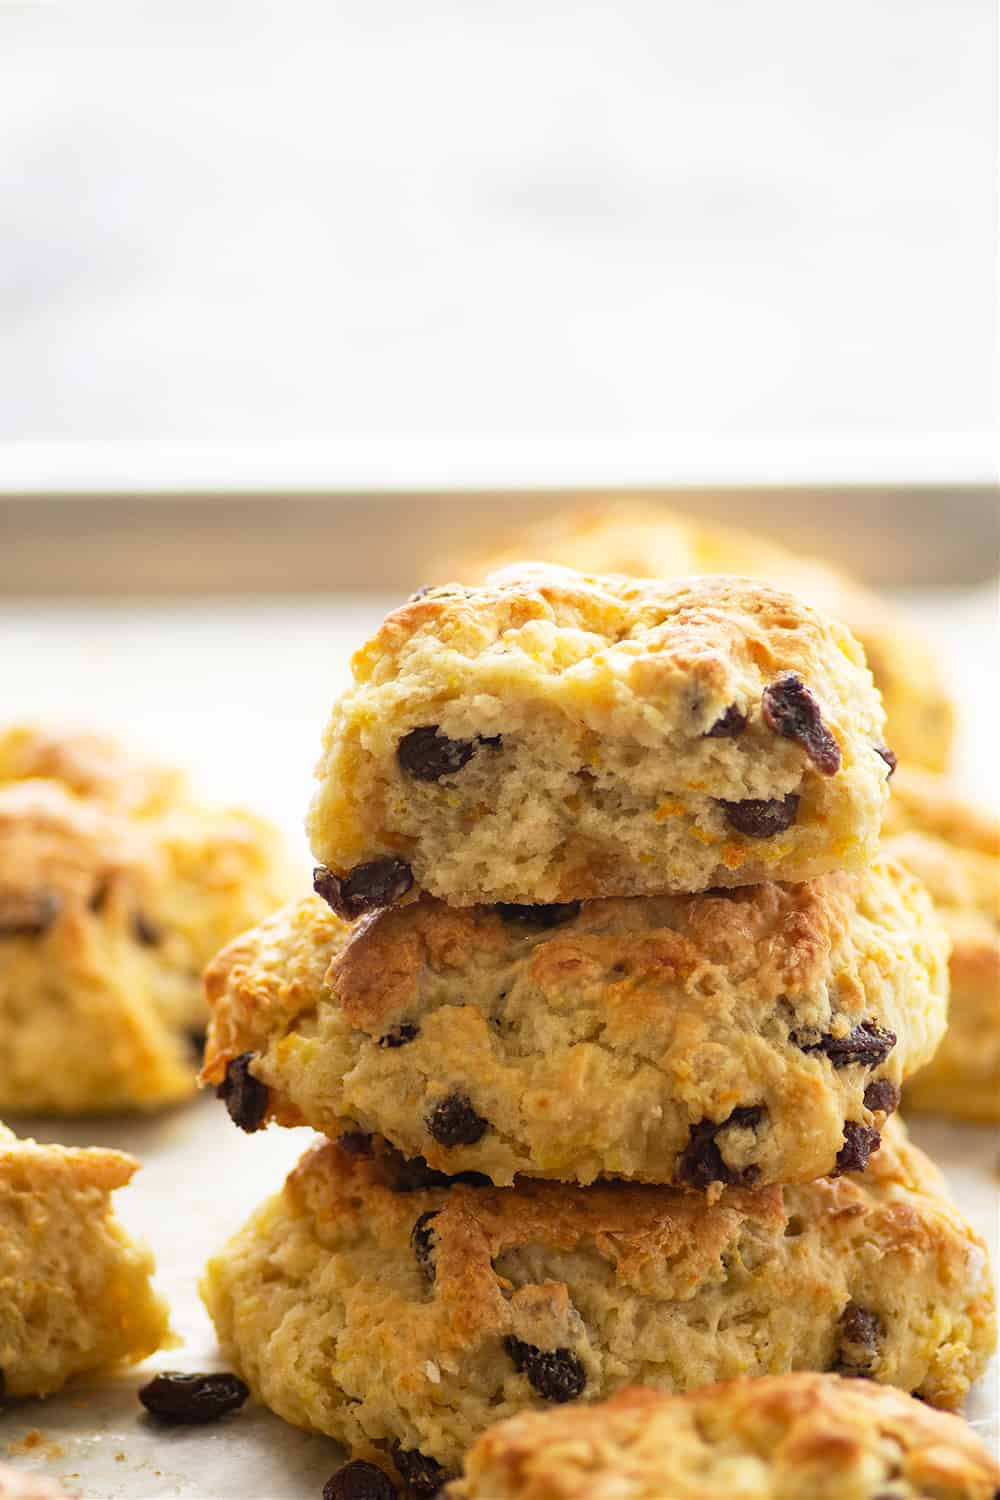 Everything you love about Irish soda bread in scone form! These Irish soda bread scones are buttery, flaky, and studded with soft raisins. - enjoy them hot from the oven with your favorite jam!